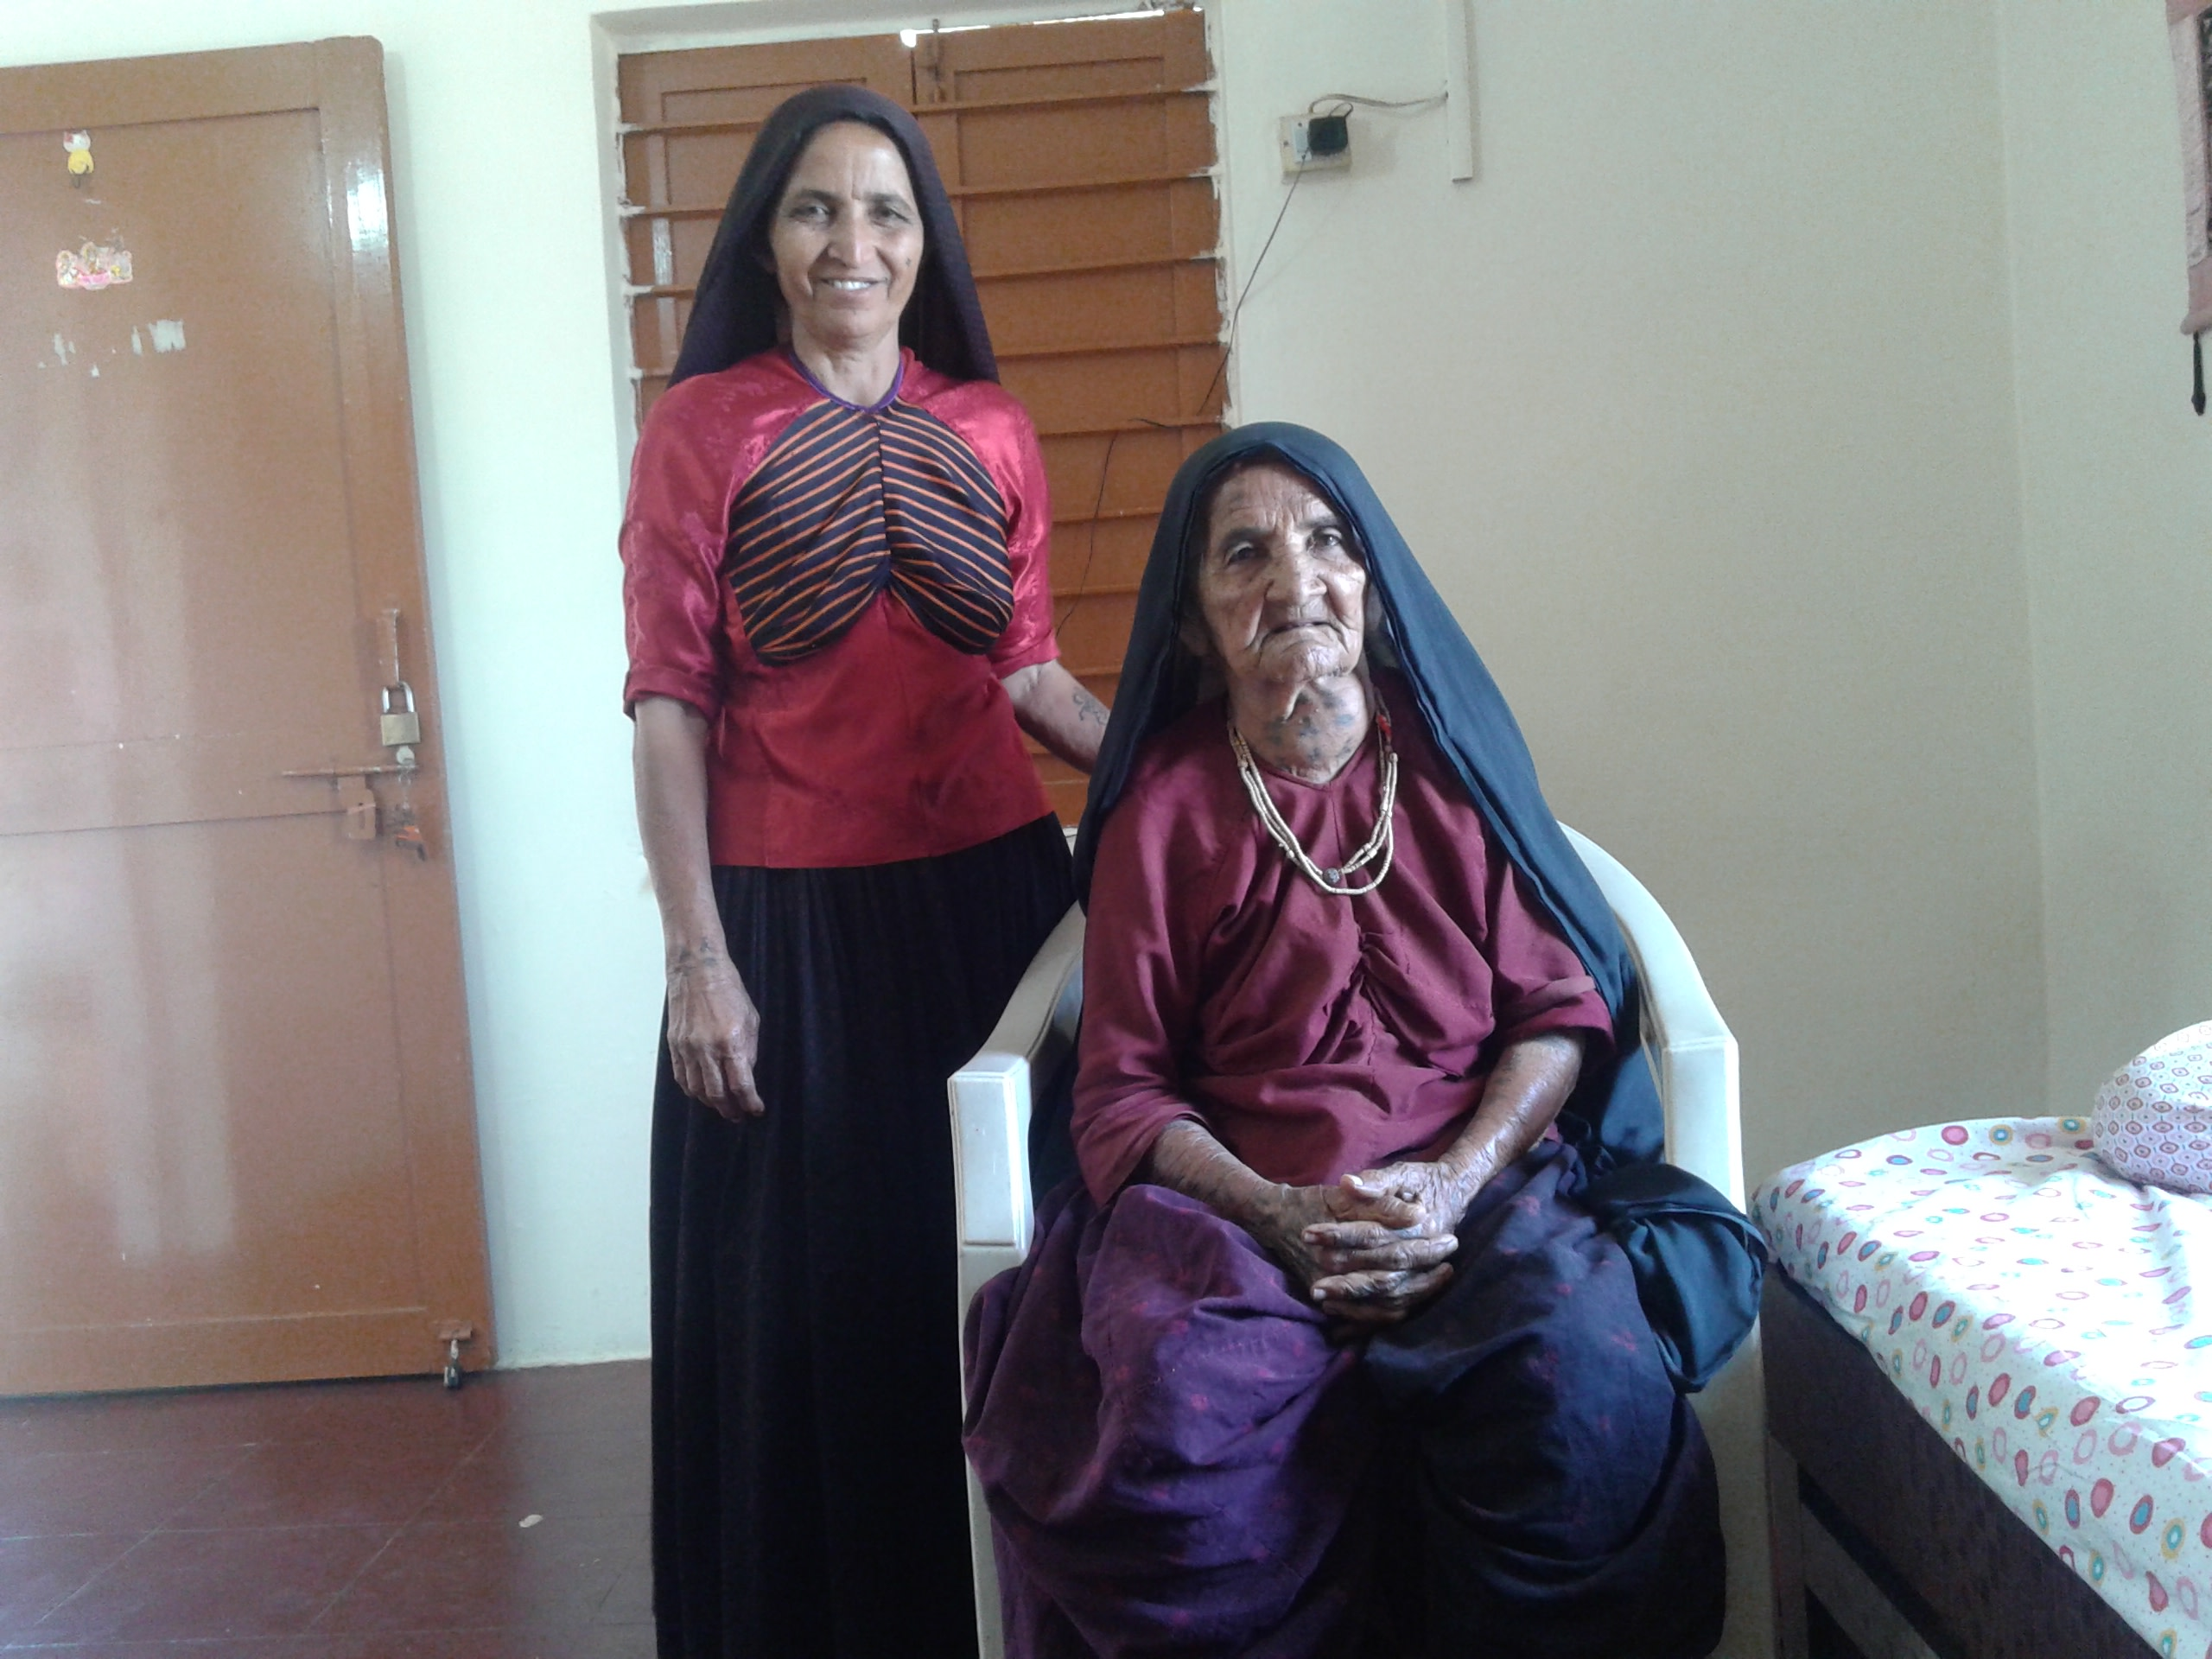 Nanimaa and her daughter